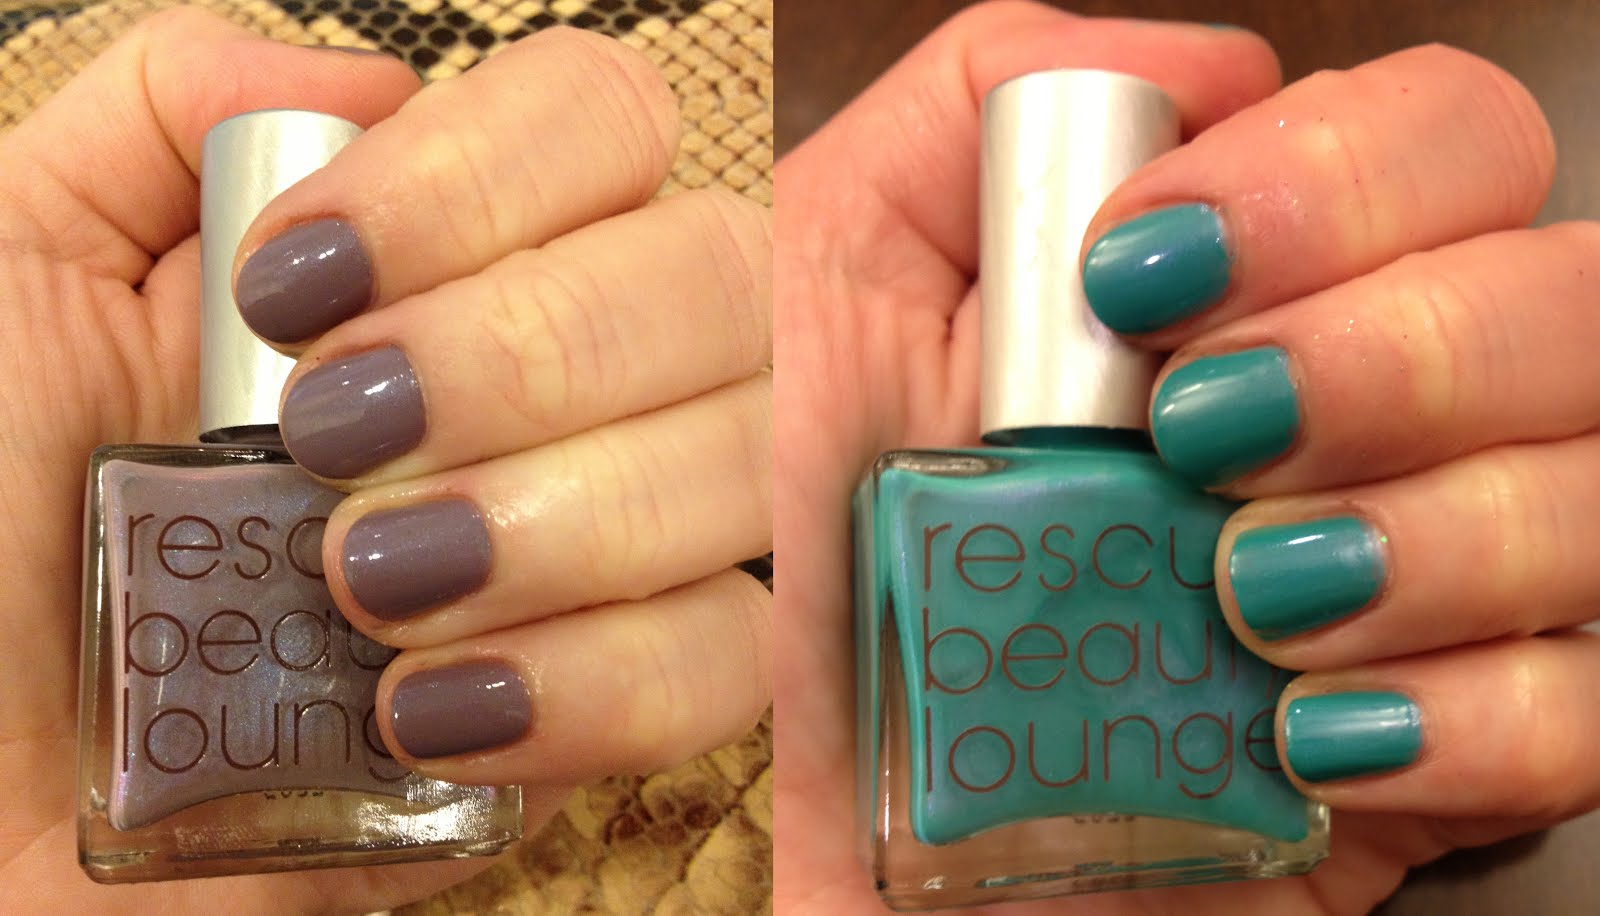 The Beauty of Life: Rescue Beauty Lounge Nail Polish Swatches ...